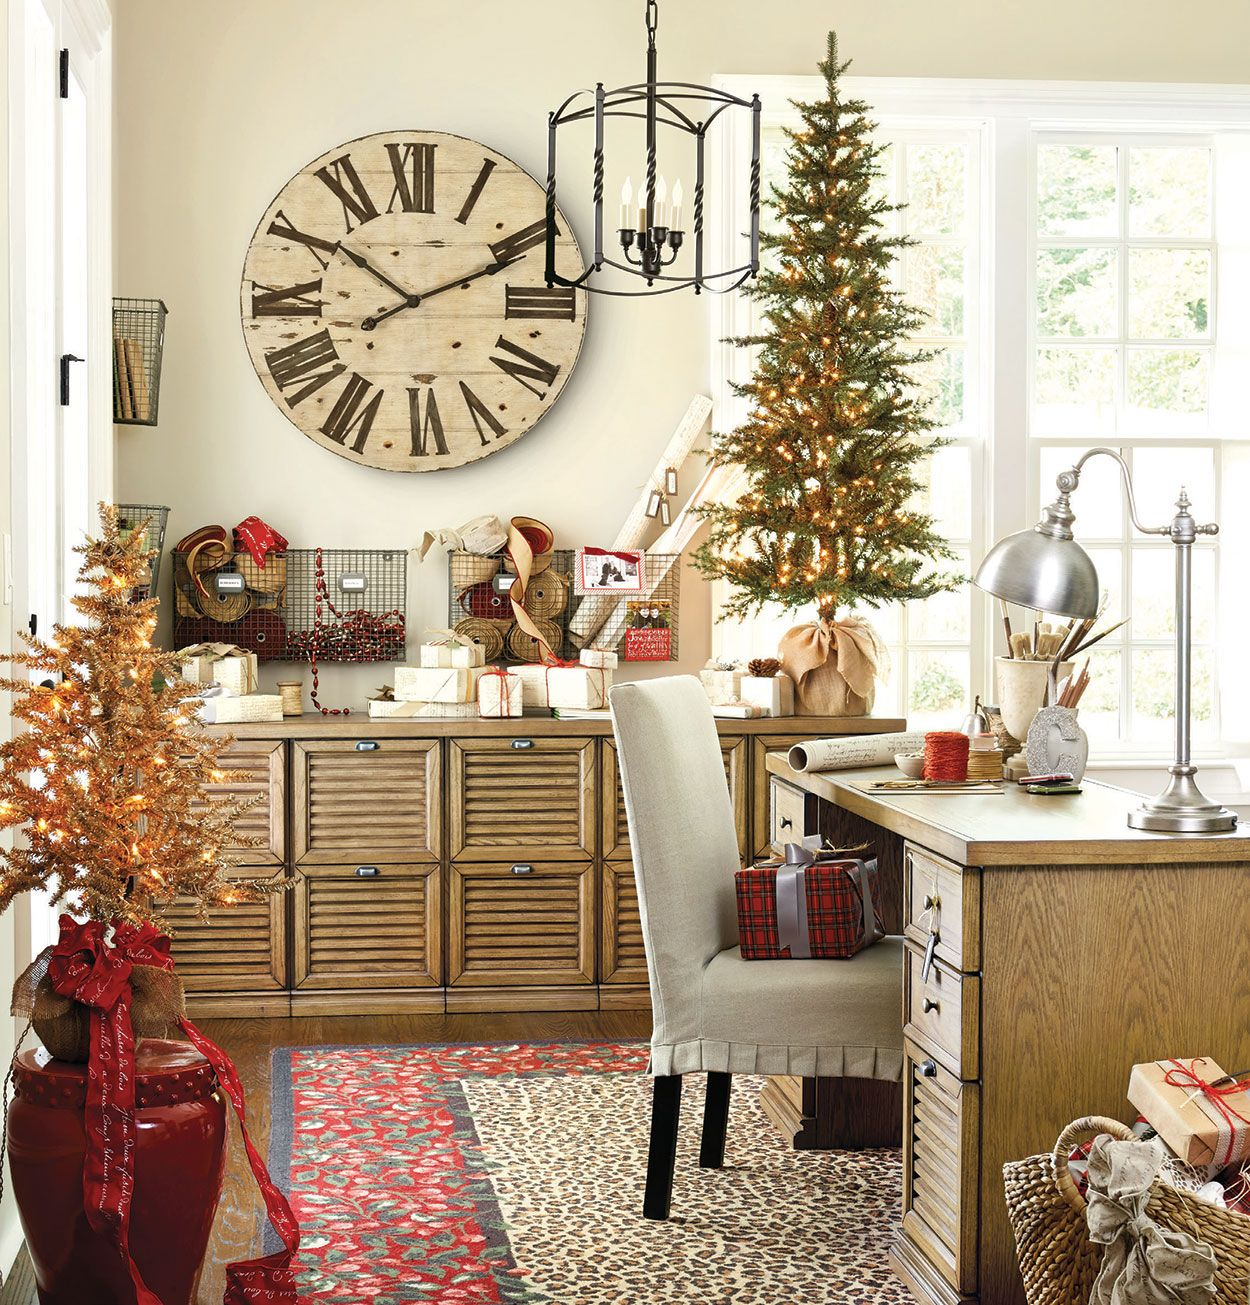 Office Spaces   Pinterest   Holidays, Inspiration and Office spaces